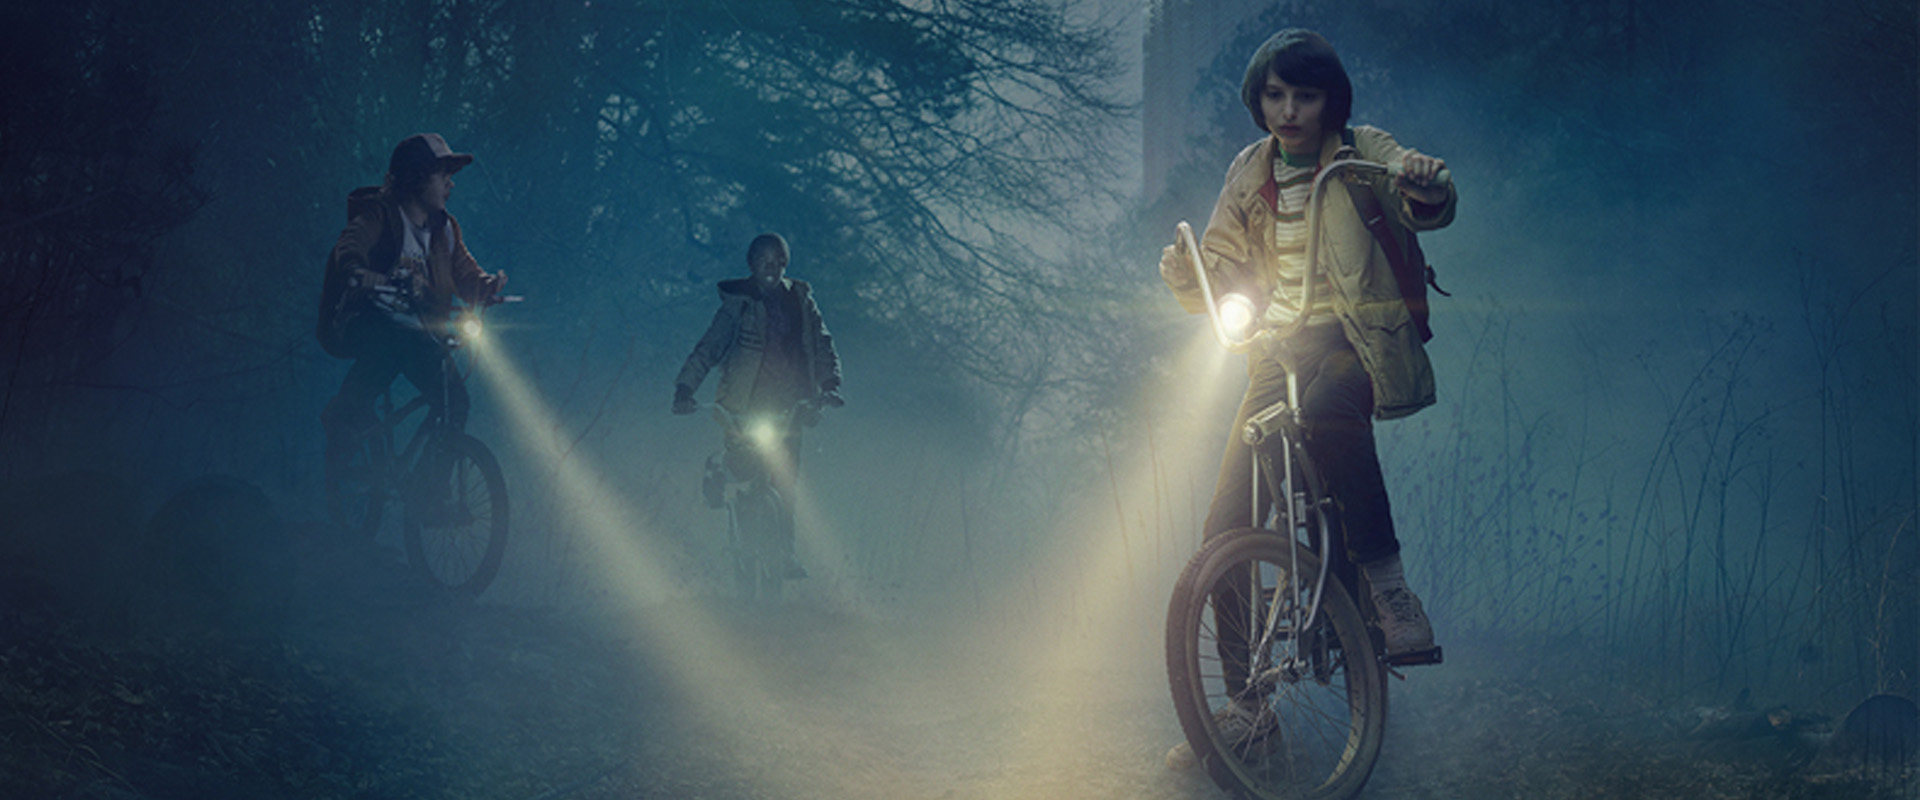 Niños de Stranger Things